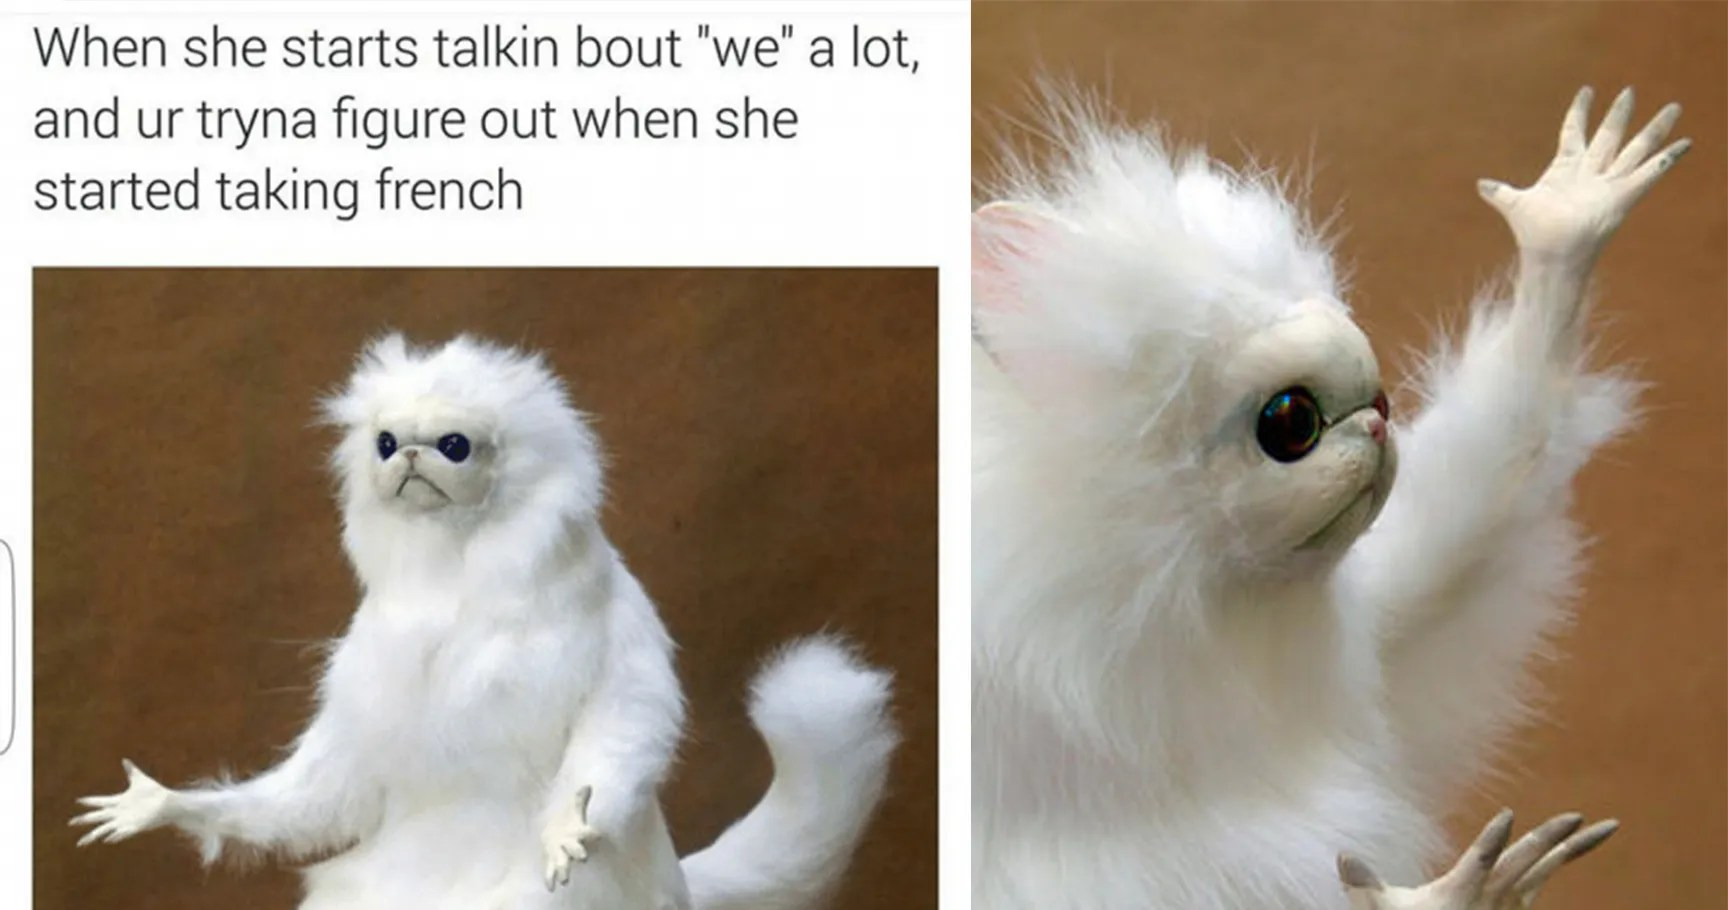 15 Hysterical Persian Cat Room Guardian Memes That Will